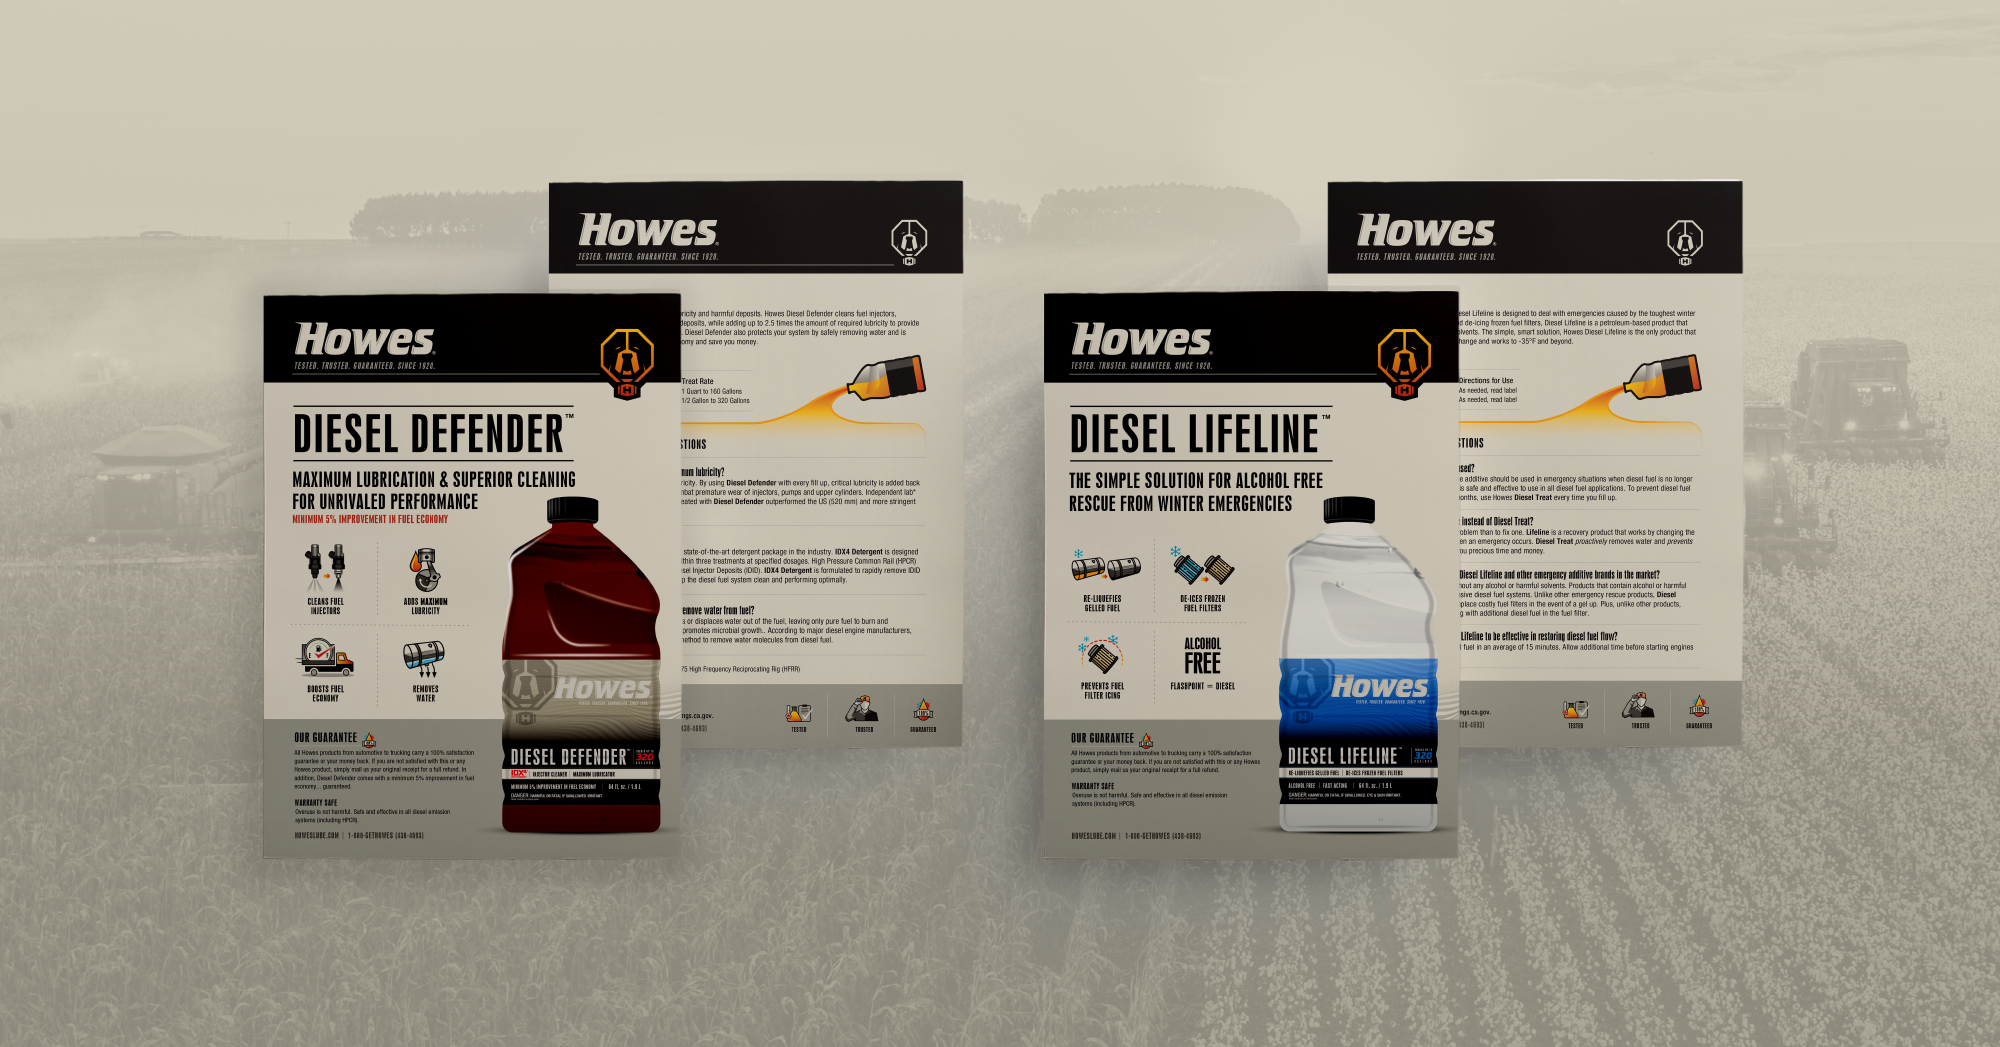 Howes_CaseStudy_images-09.png